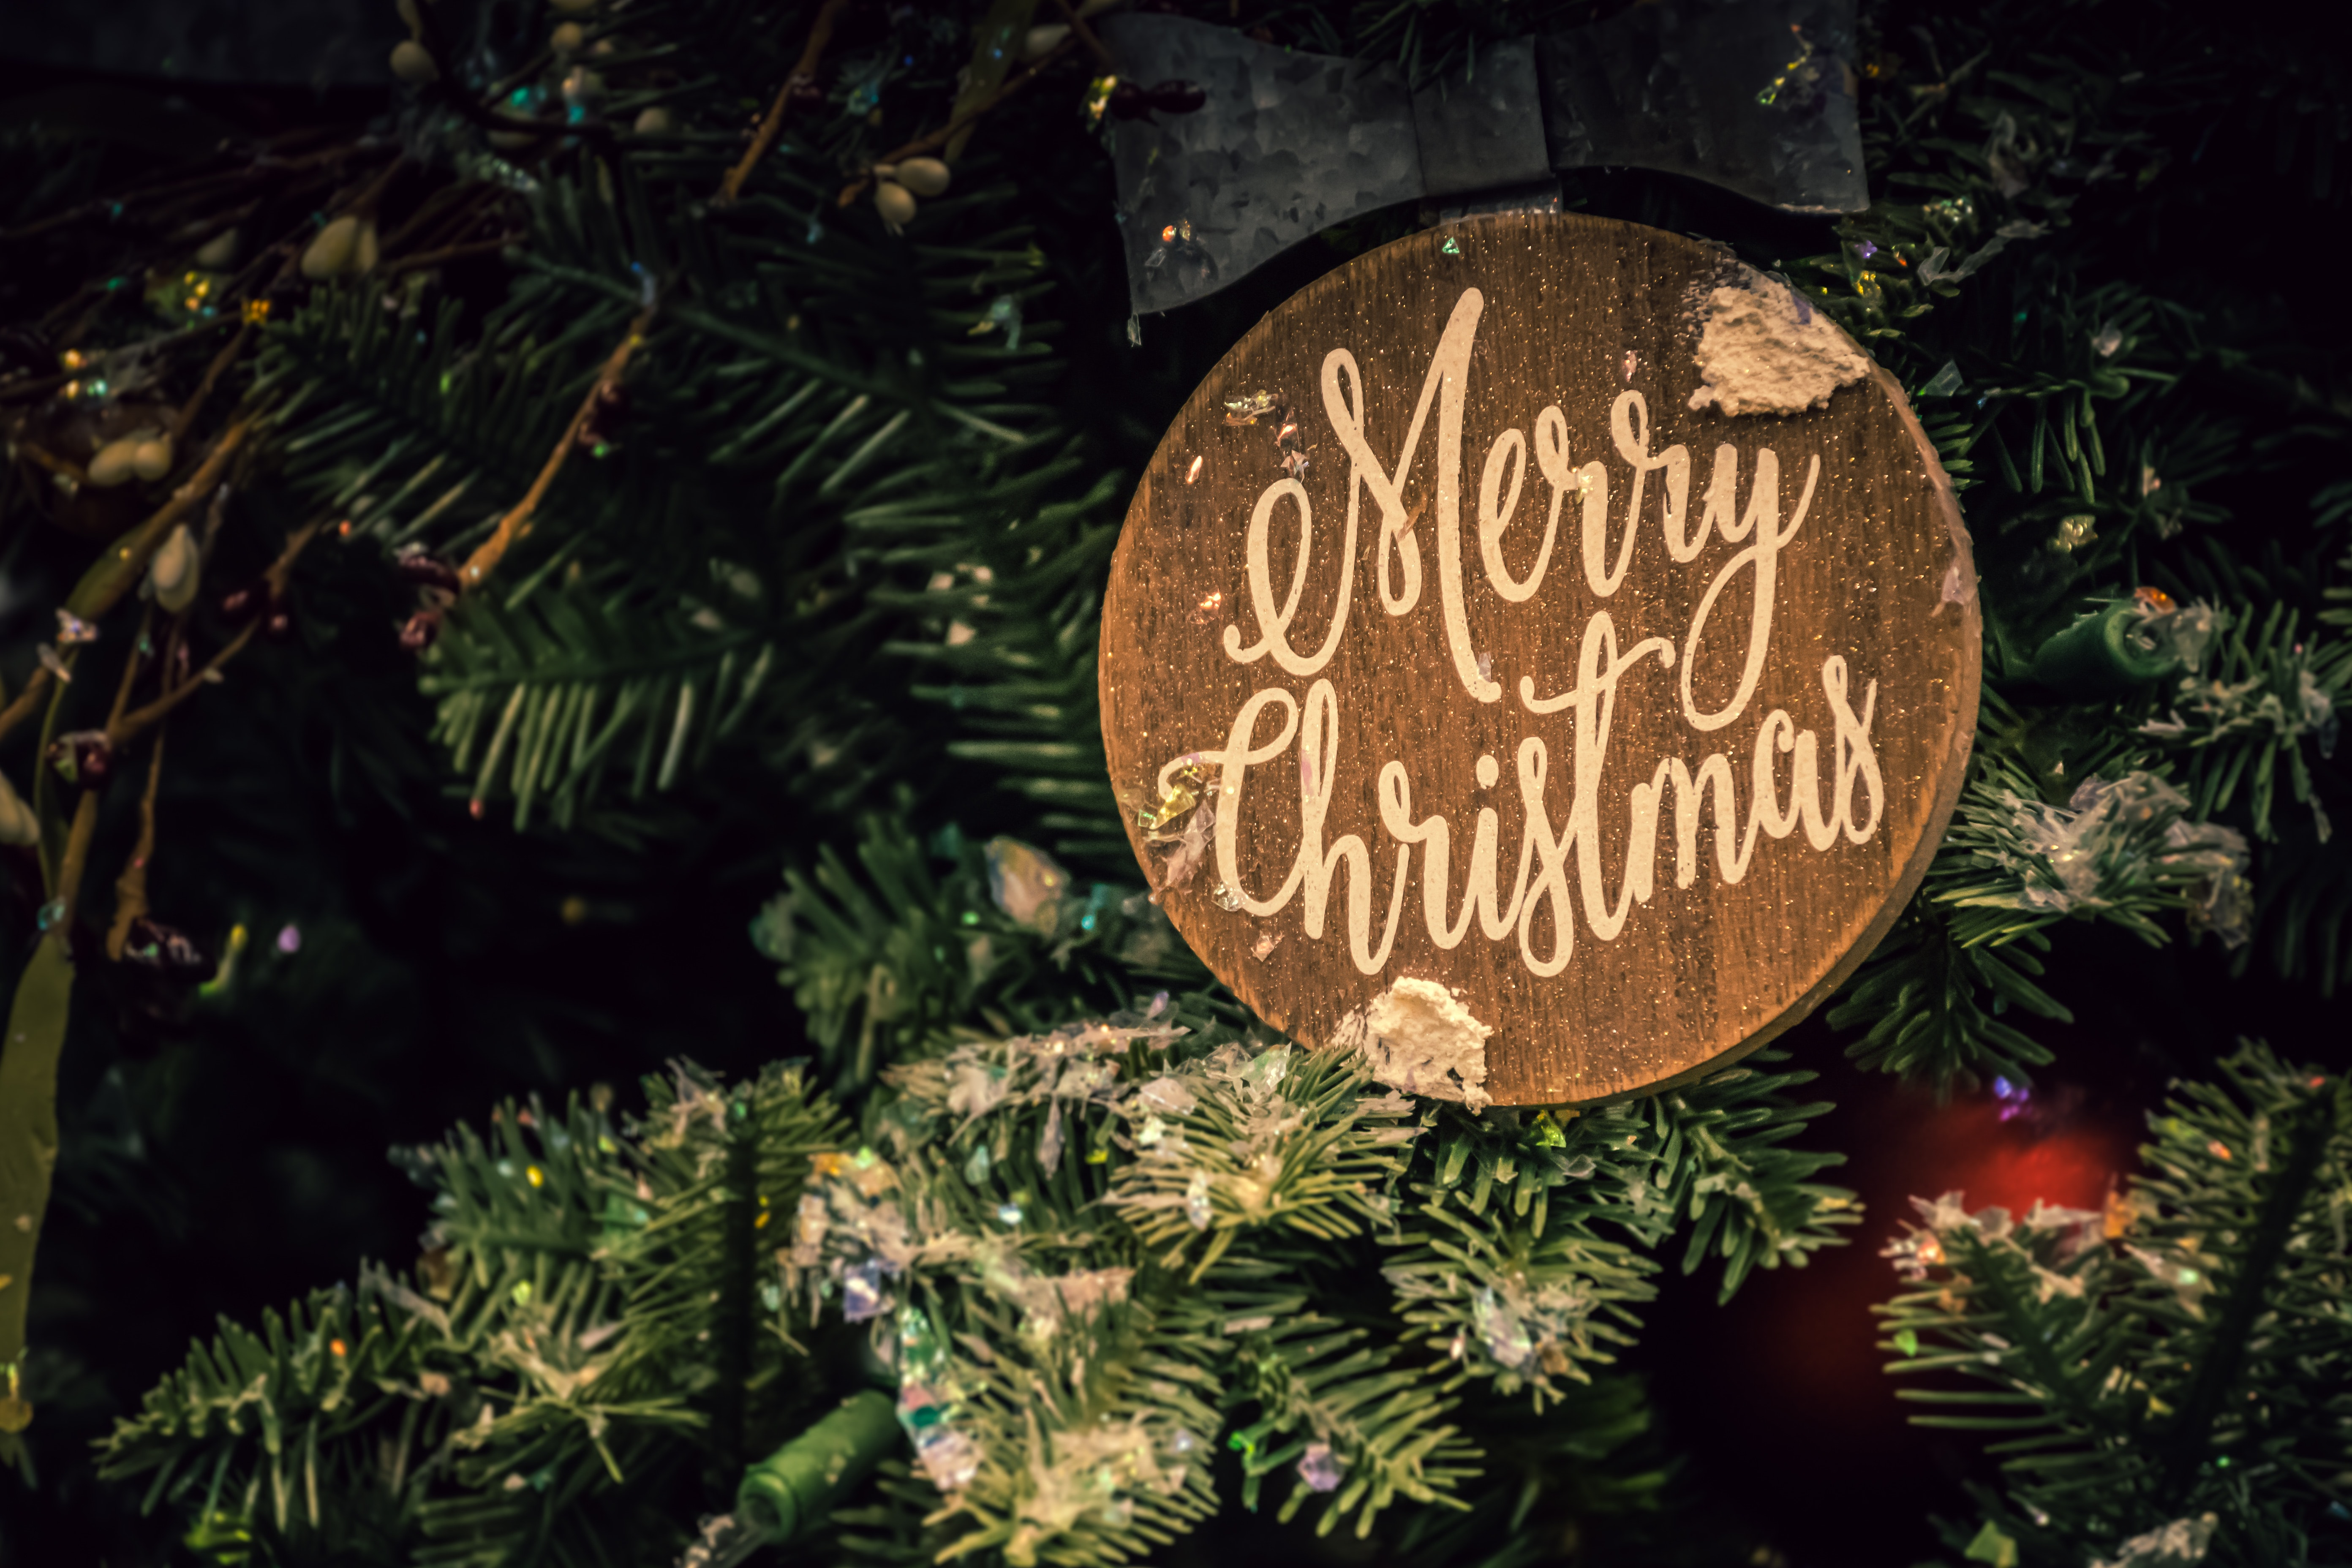 Merry Christmas Day 2019 Wishes Christmas Messages Download